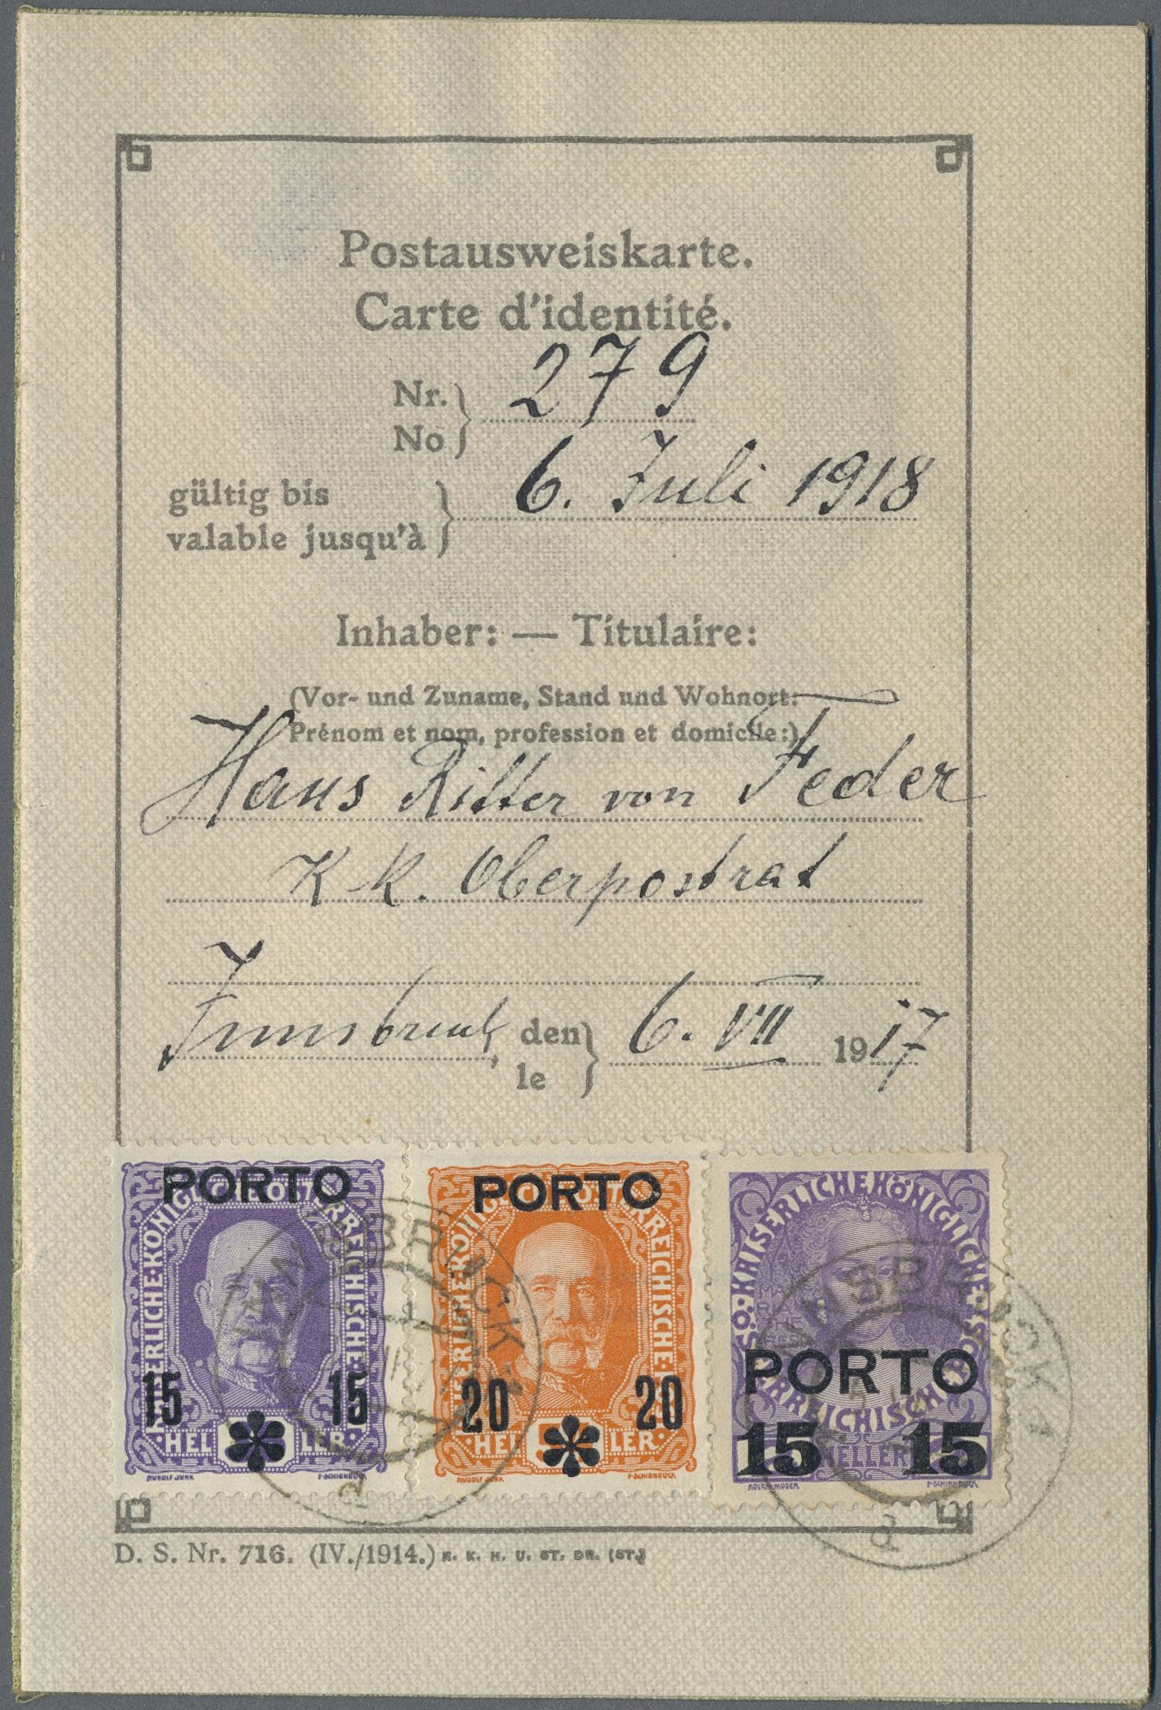 Lot 18125 - Österreich - Portomarken  -  Auktionshaus Christoph Gärtner GmbH & Co. KG Single lots Philately Overseas & Europe. Auction #39 Day 4